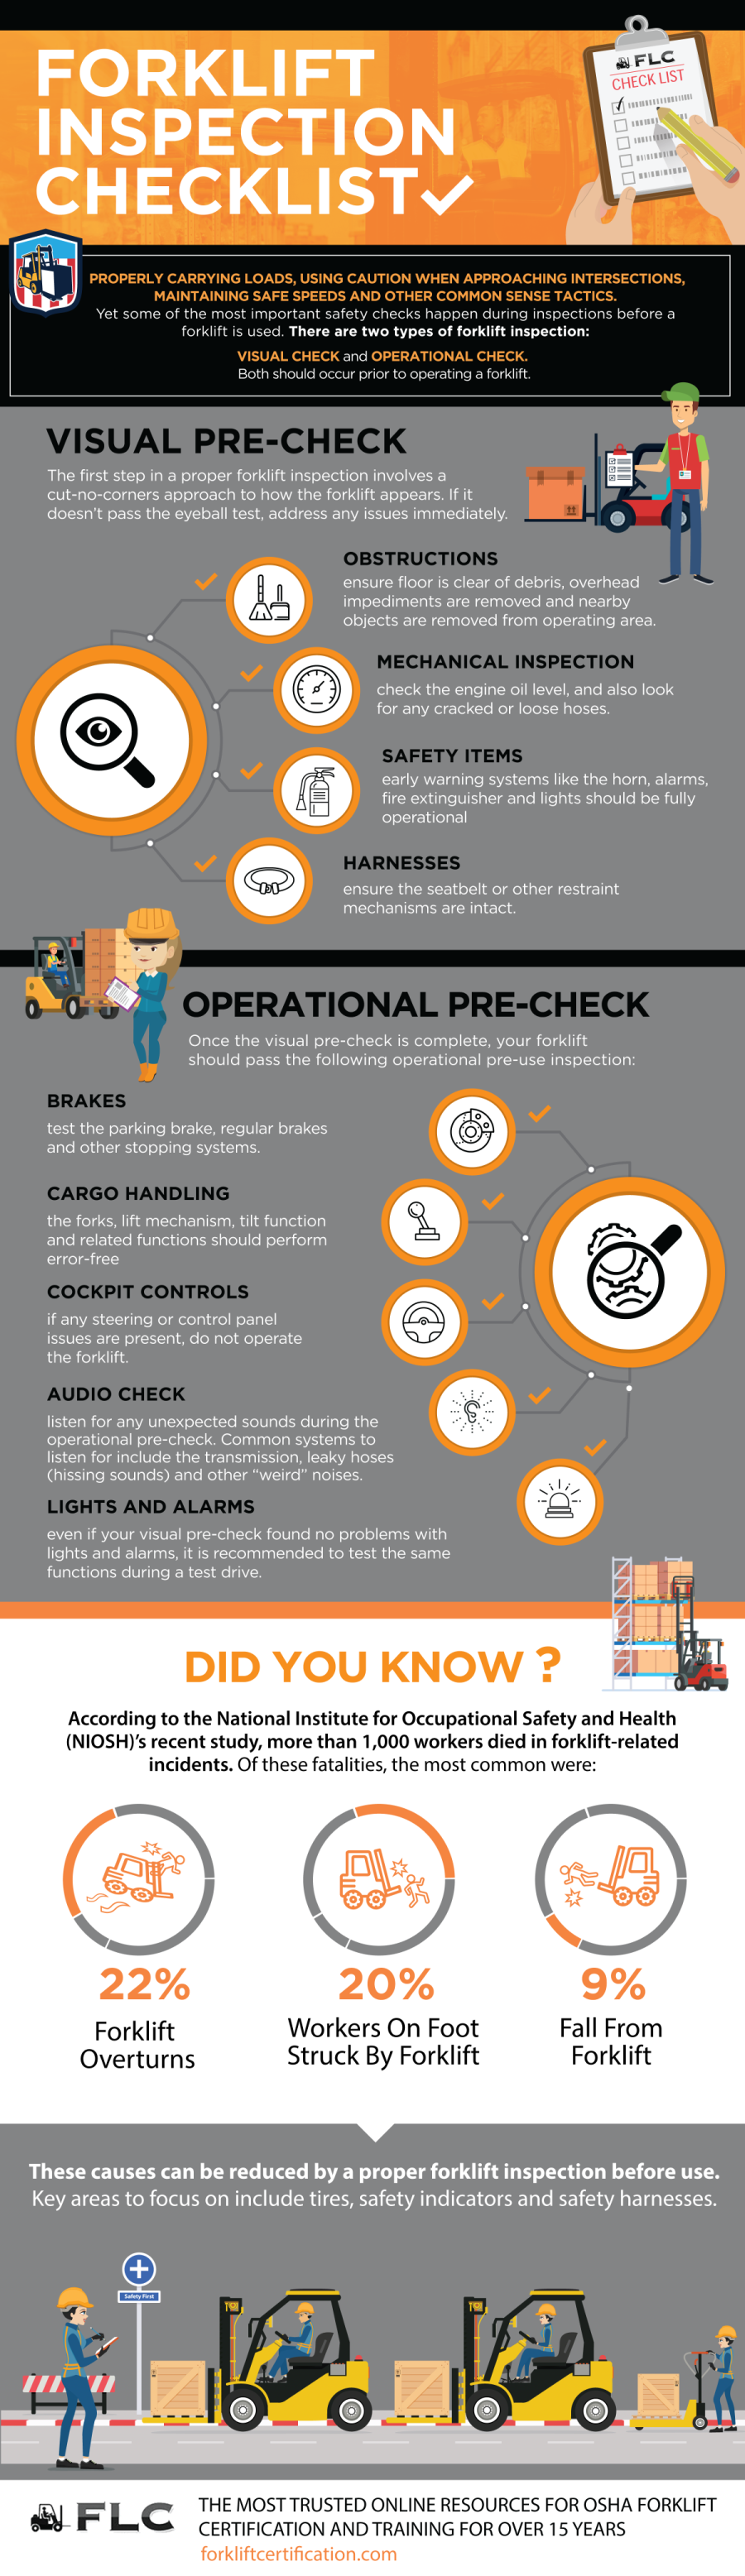 Forklift Inspection Checklist - Forkliftcertification.com